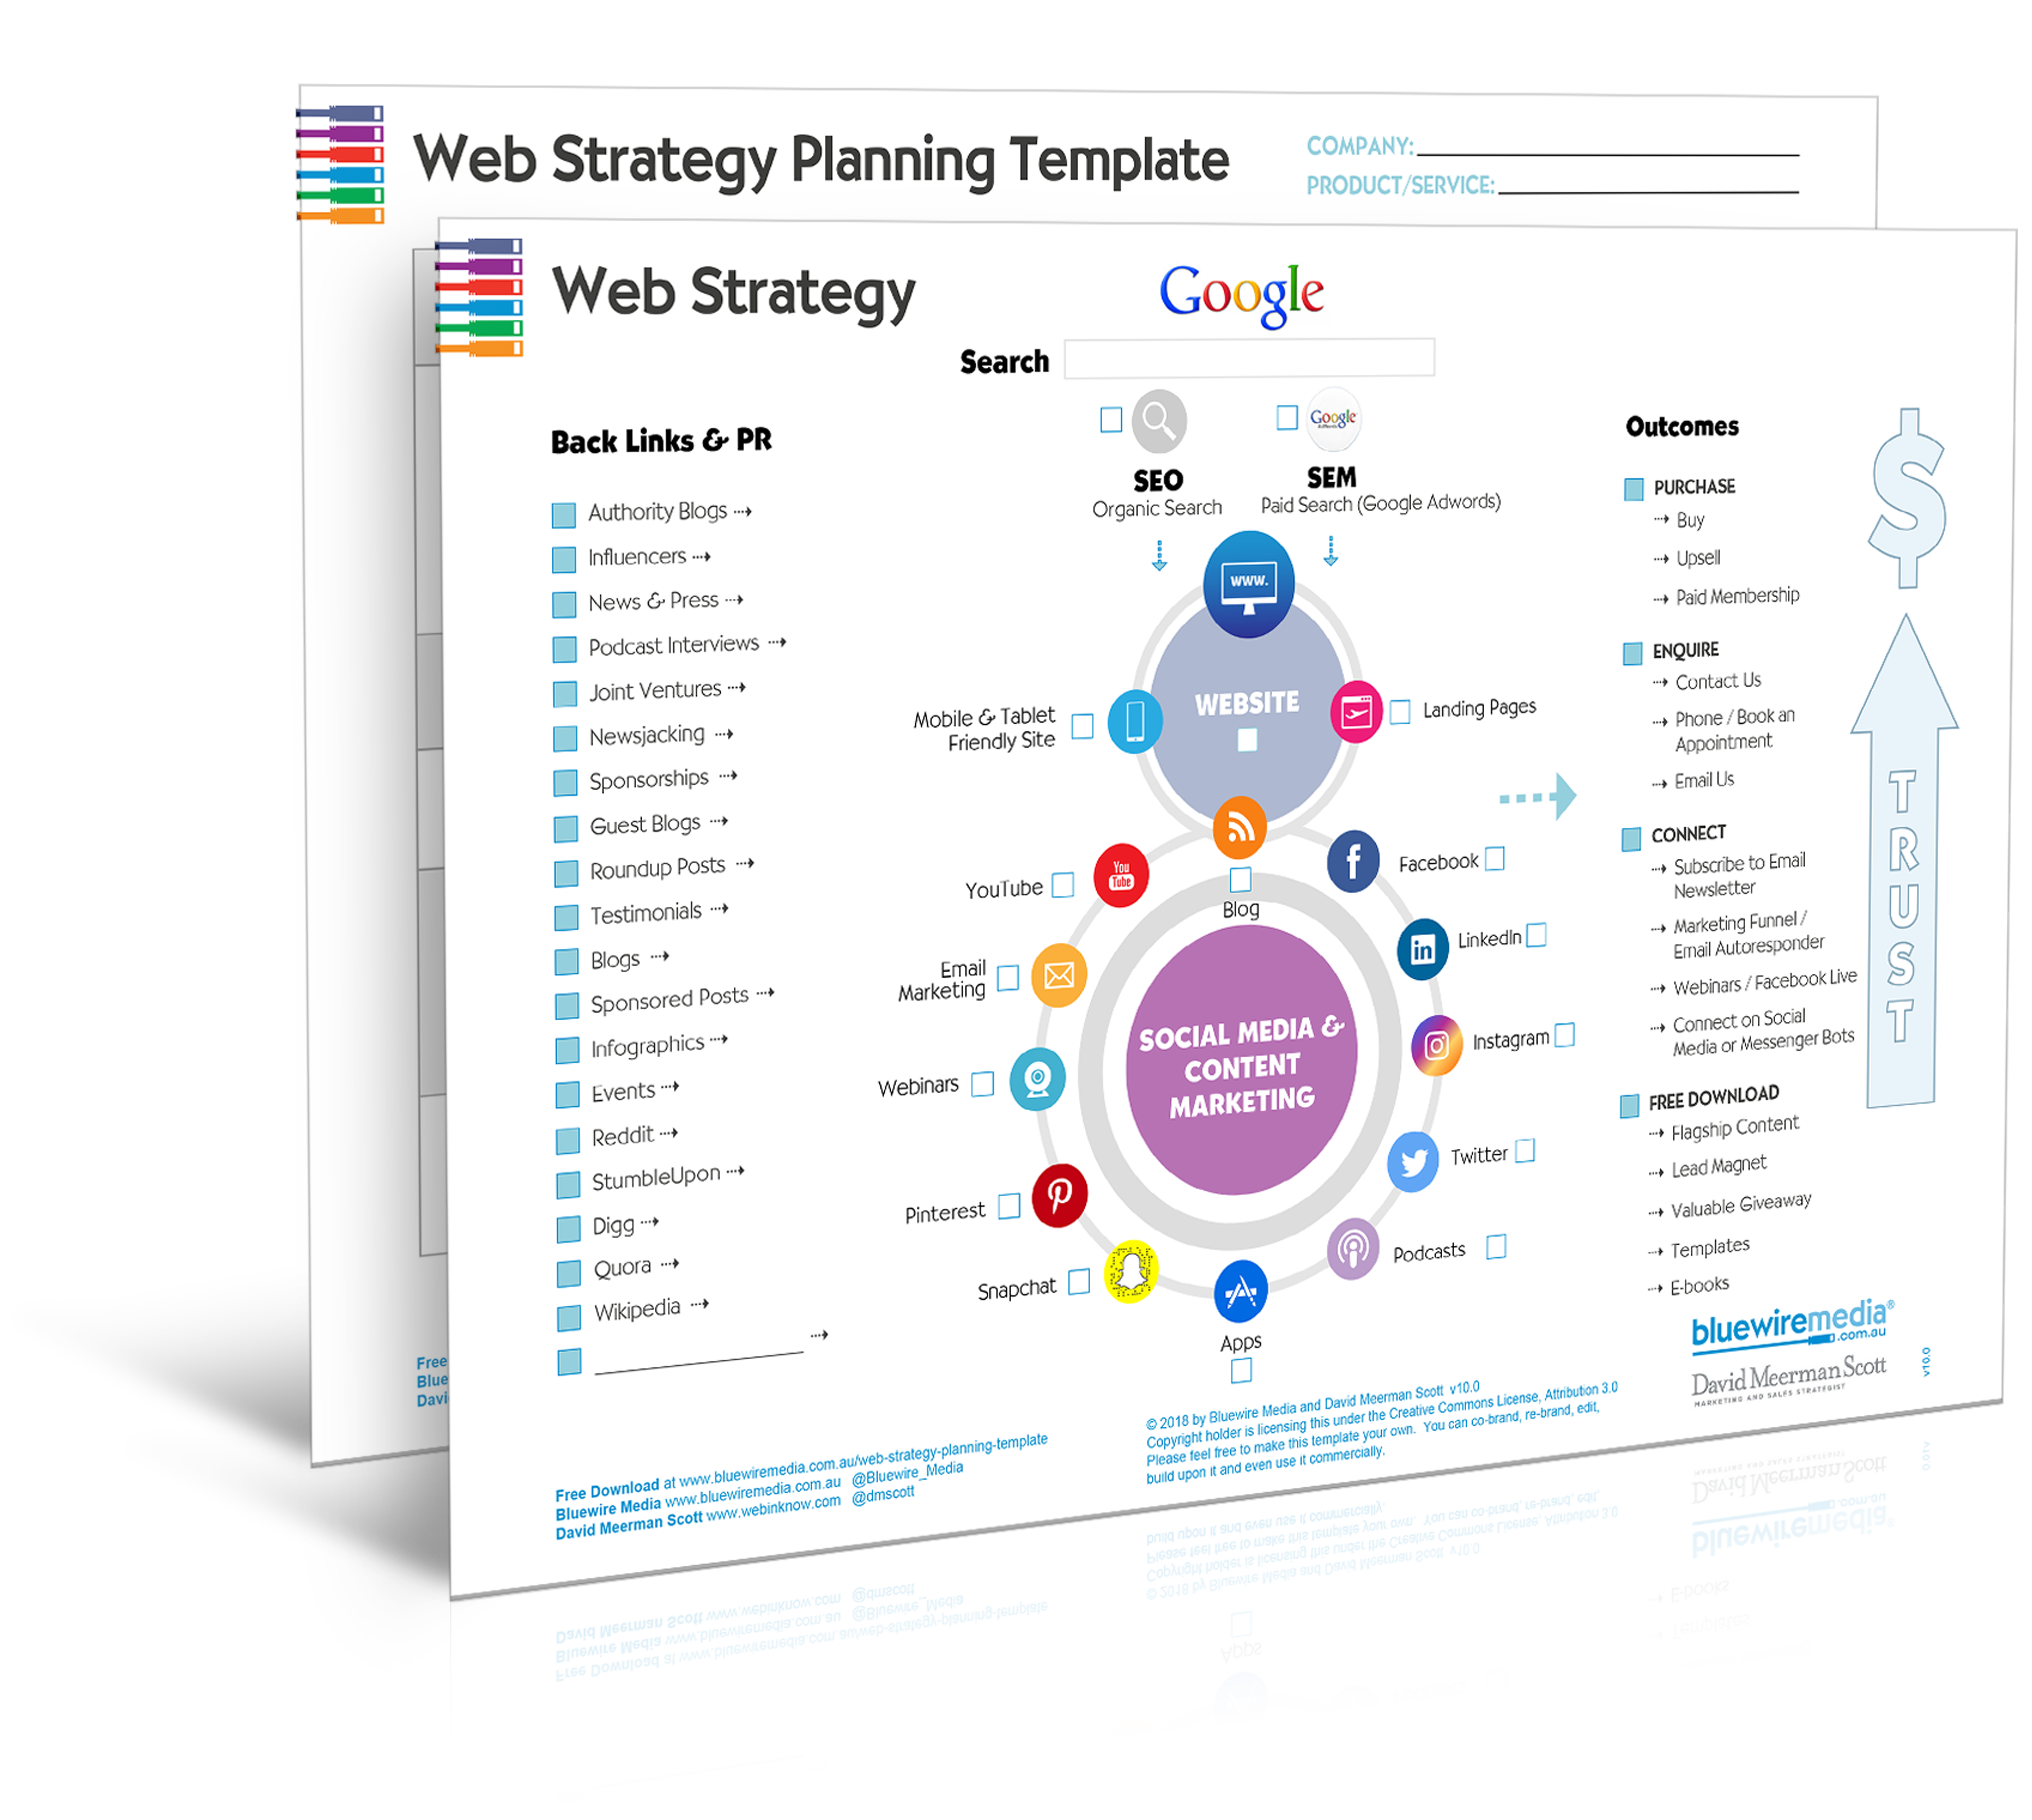 Digital online marketing web strategy planning template 2018 digital marketing strategy template for online business marketing free pdf download flashek Gallery